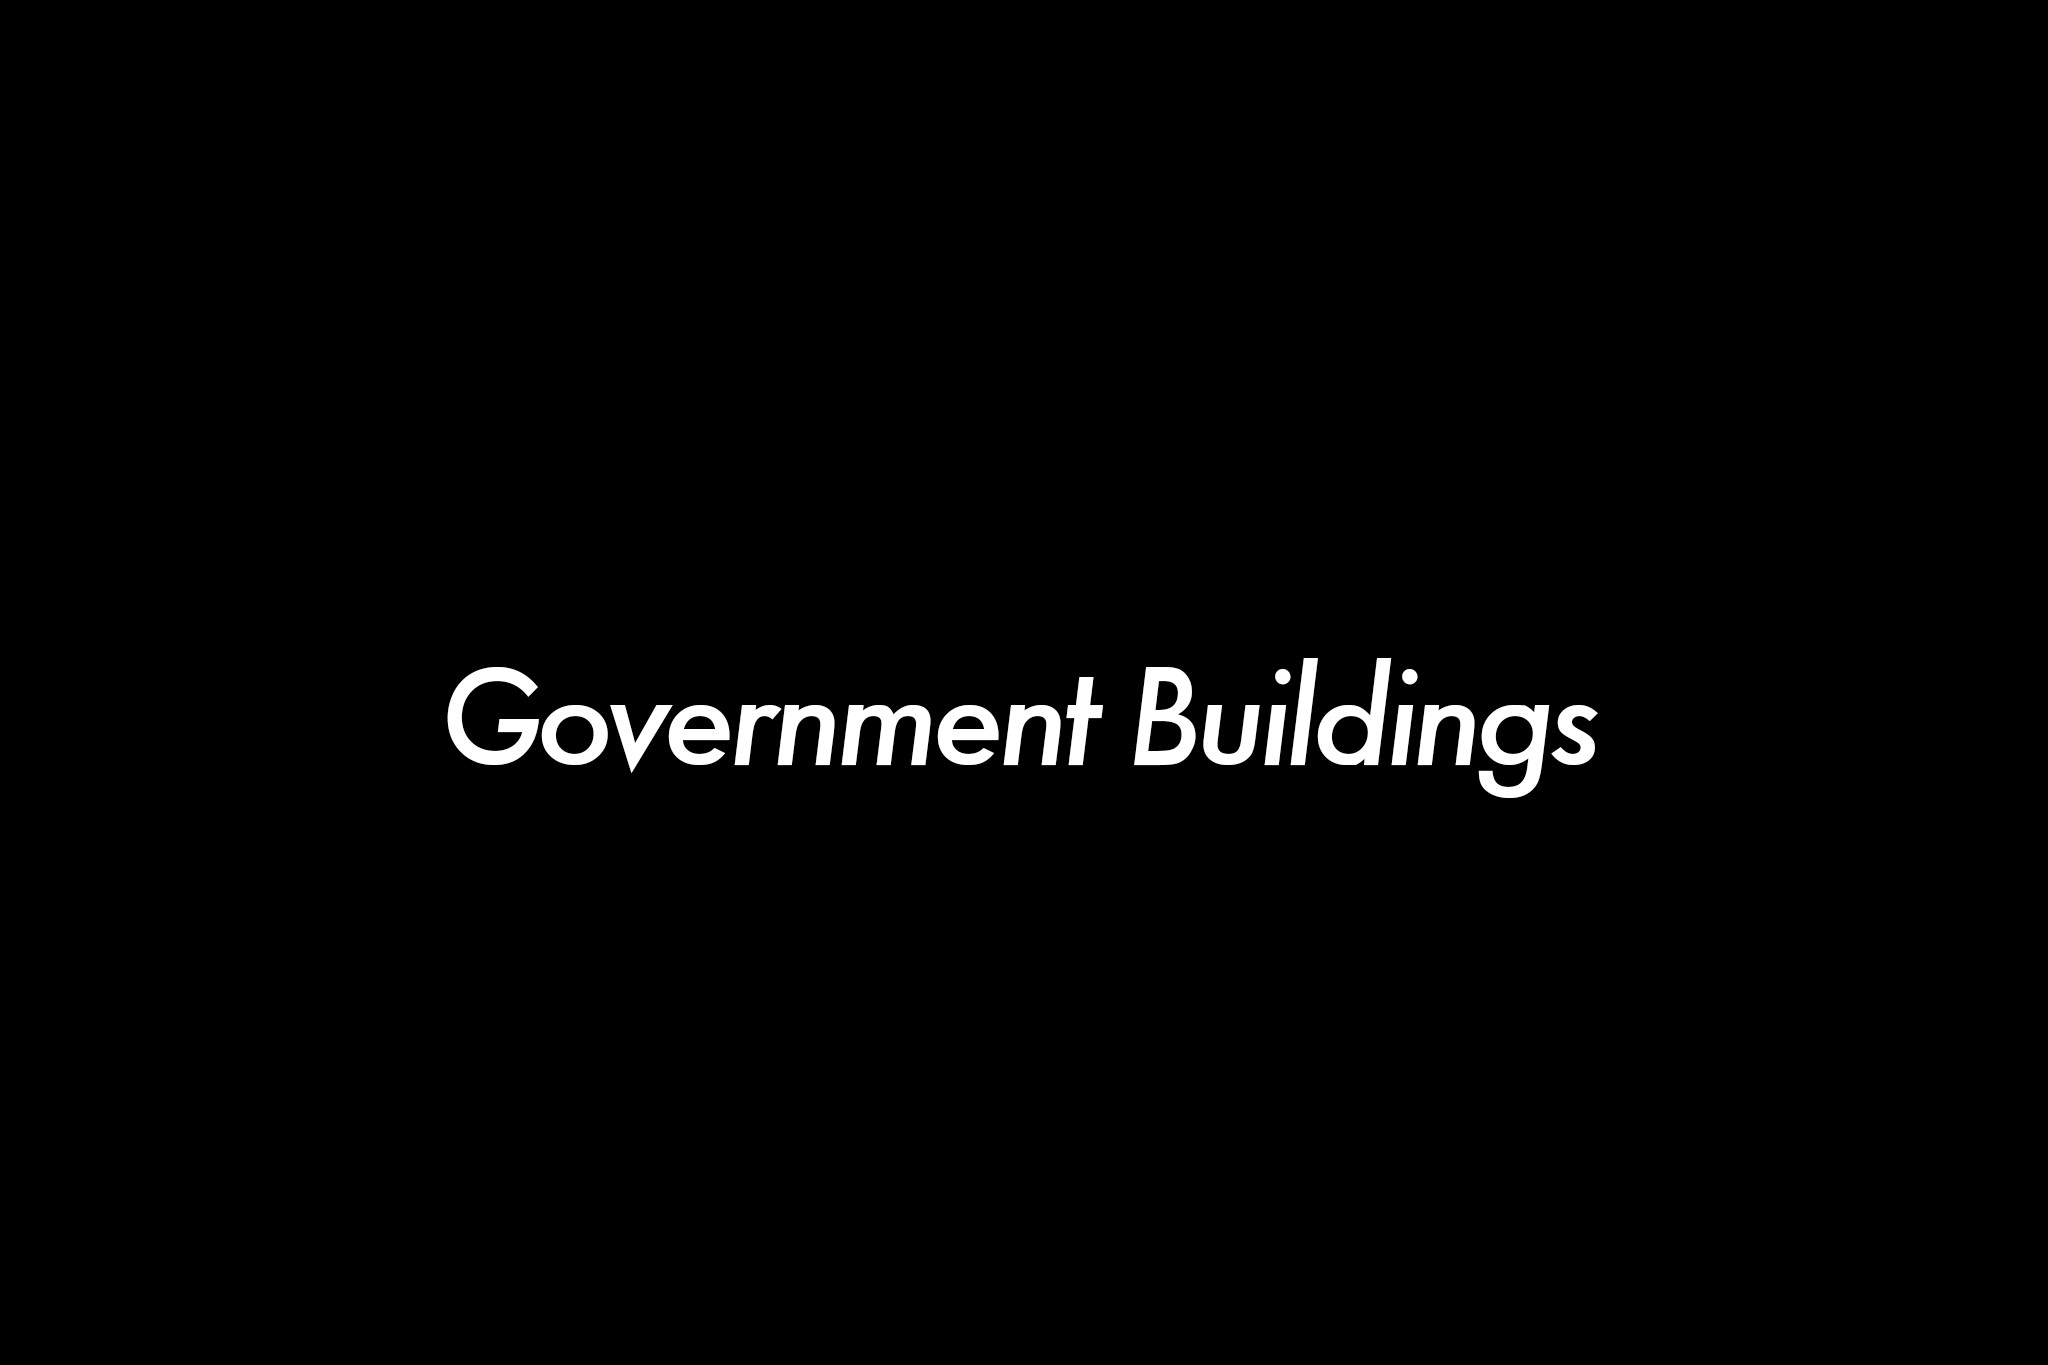 Government Buildings.jpg